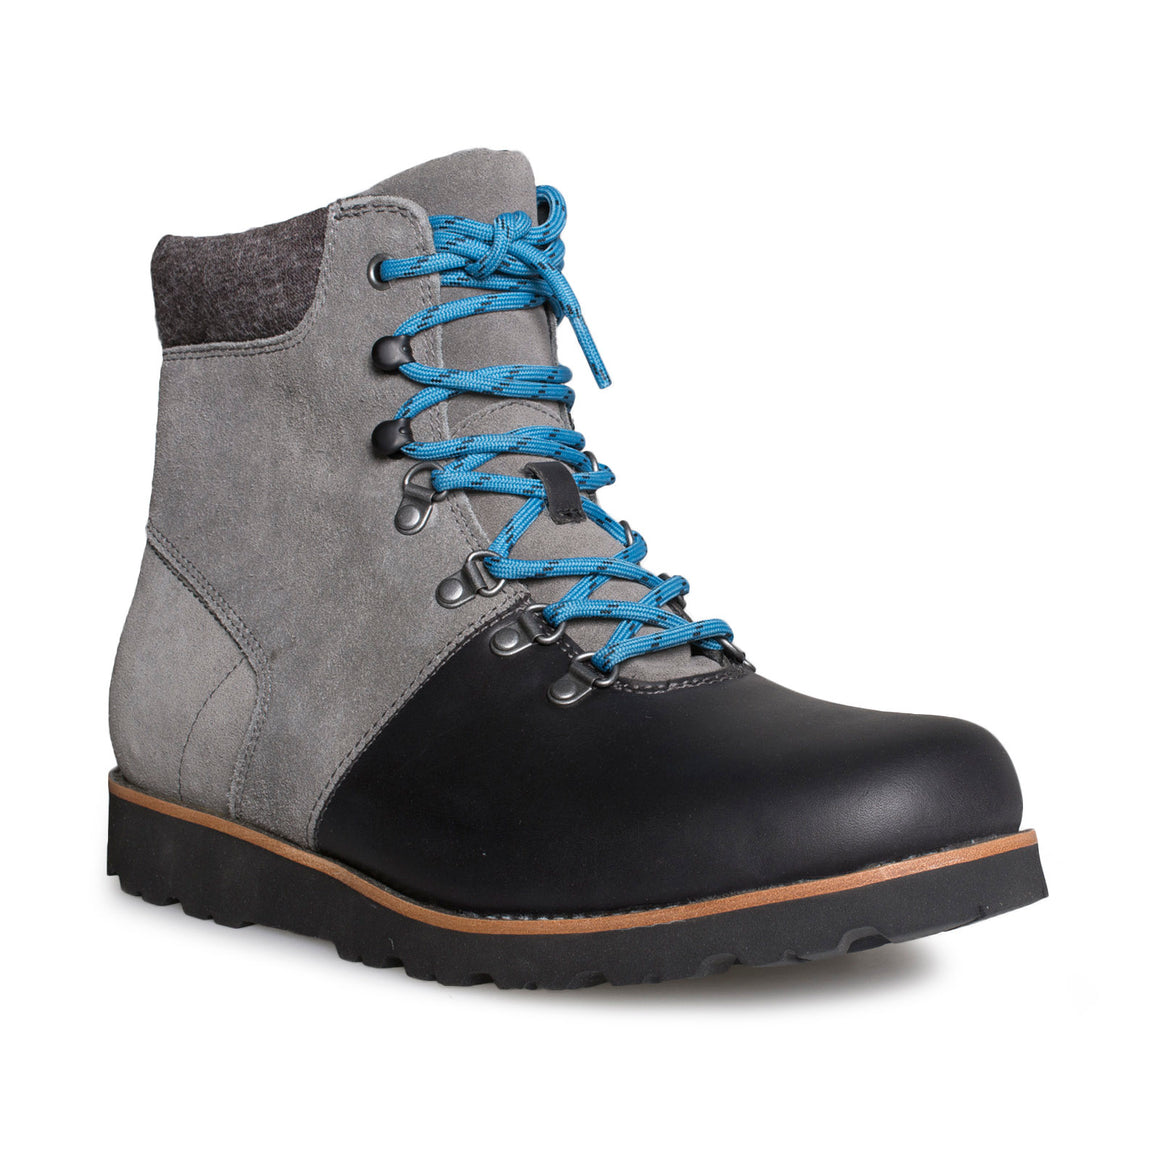 UGG Halfdan Charcoal Boots - Men's